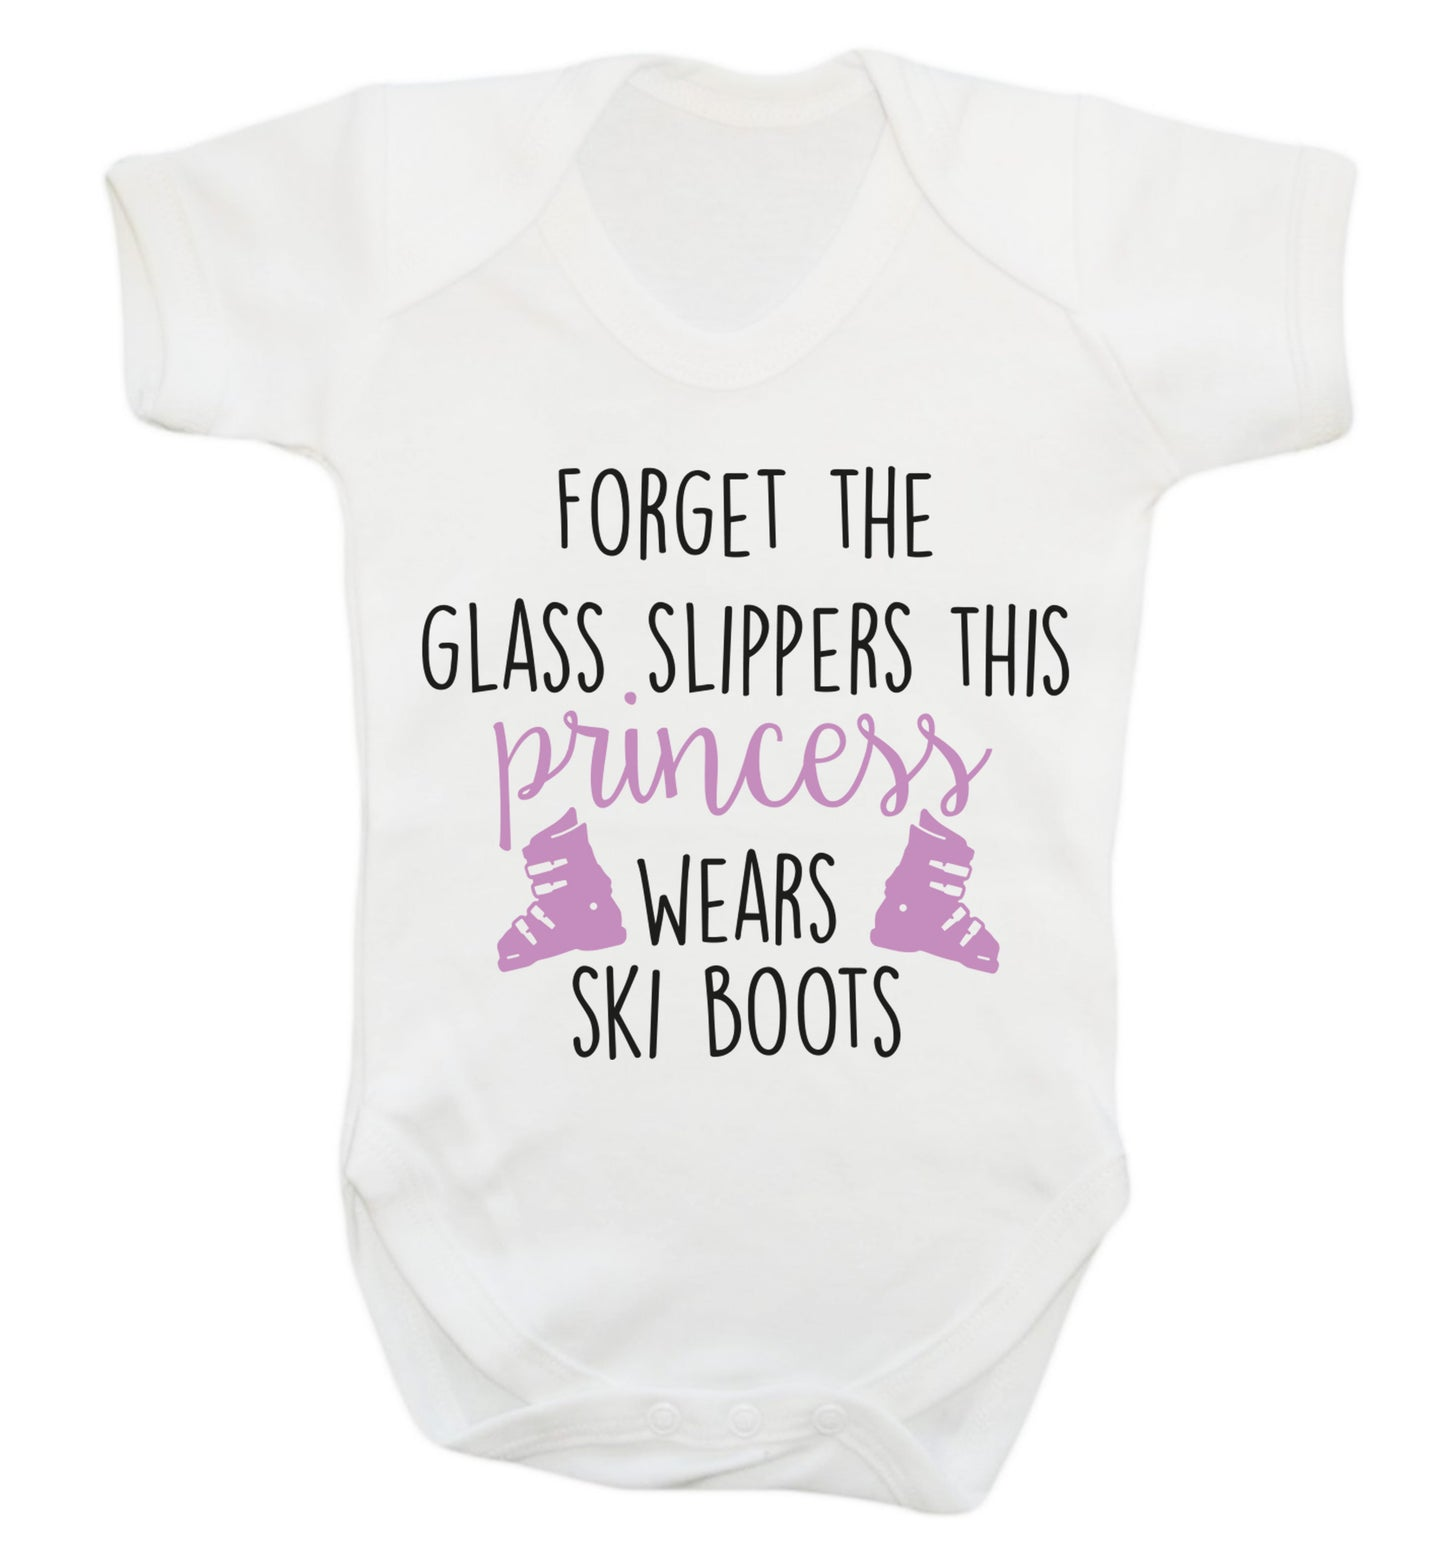 Forget the glass slippers this princess wears ski boots Baby Vest white 18-24 months